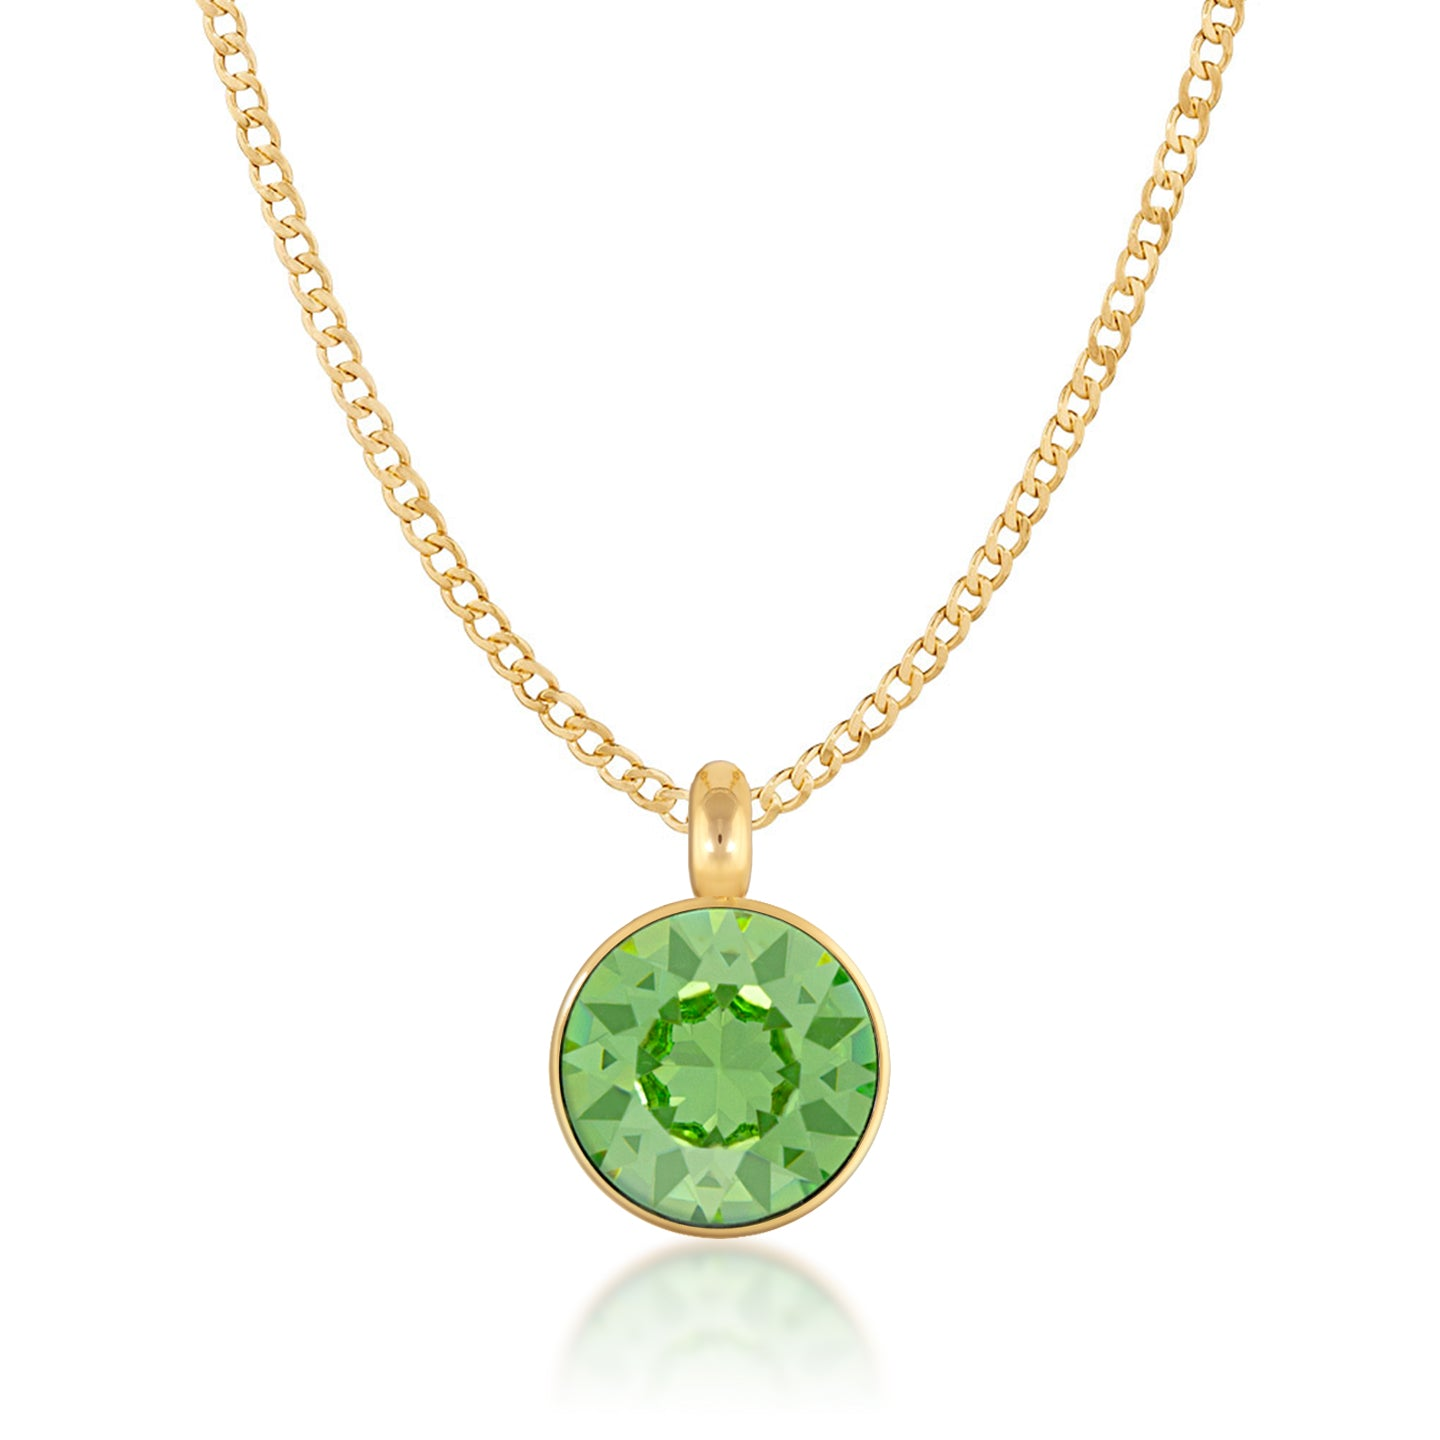 Bella Pendant Necklace with Green Peridot Round Crystals from Swarovski Gold Plated - Ed Heart